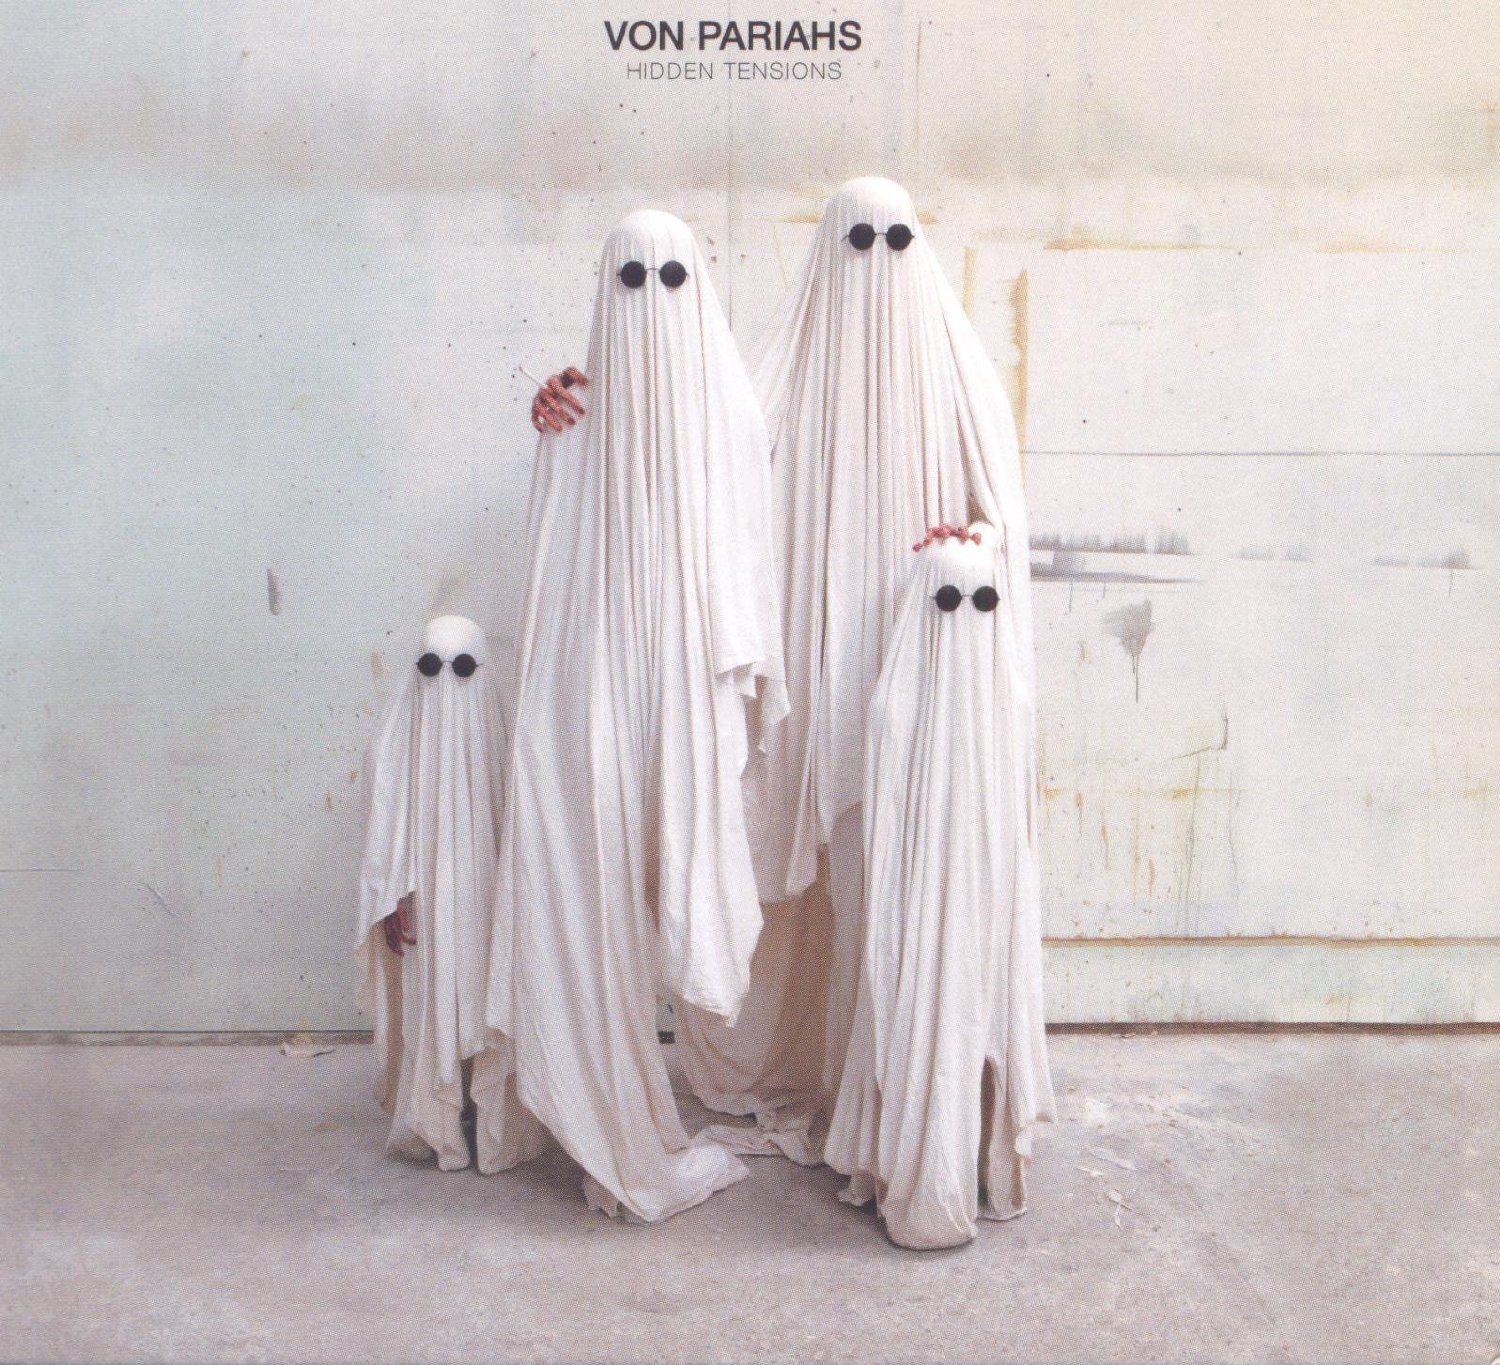 Von Pariah - Hidden Tensions CD (album) cover